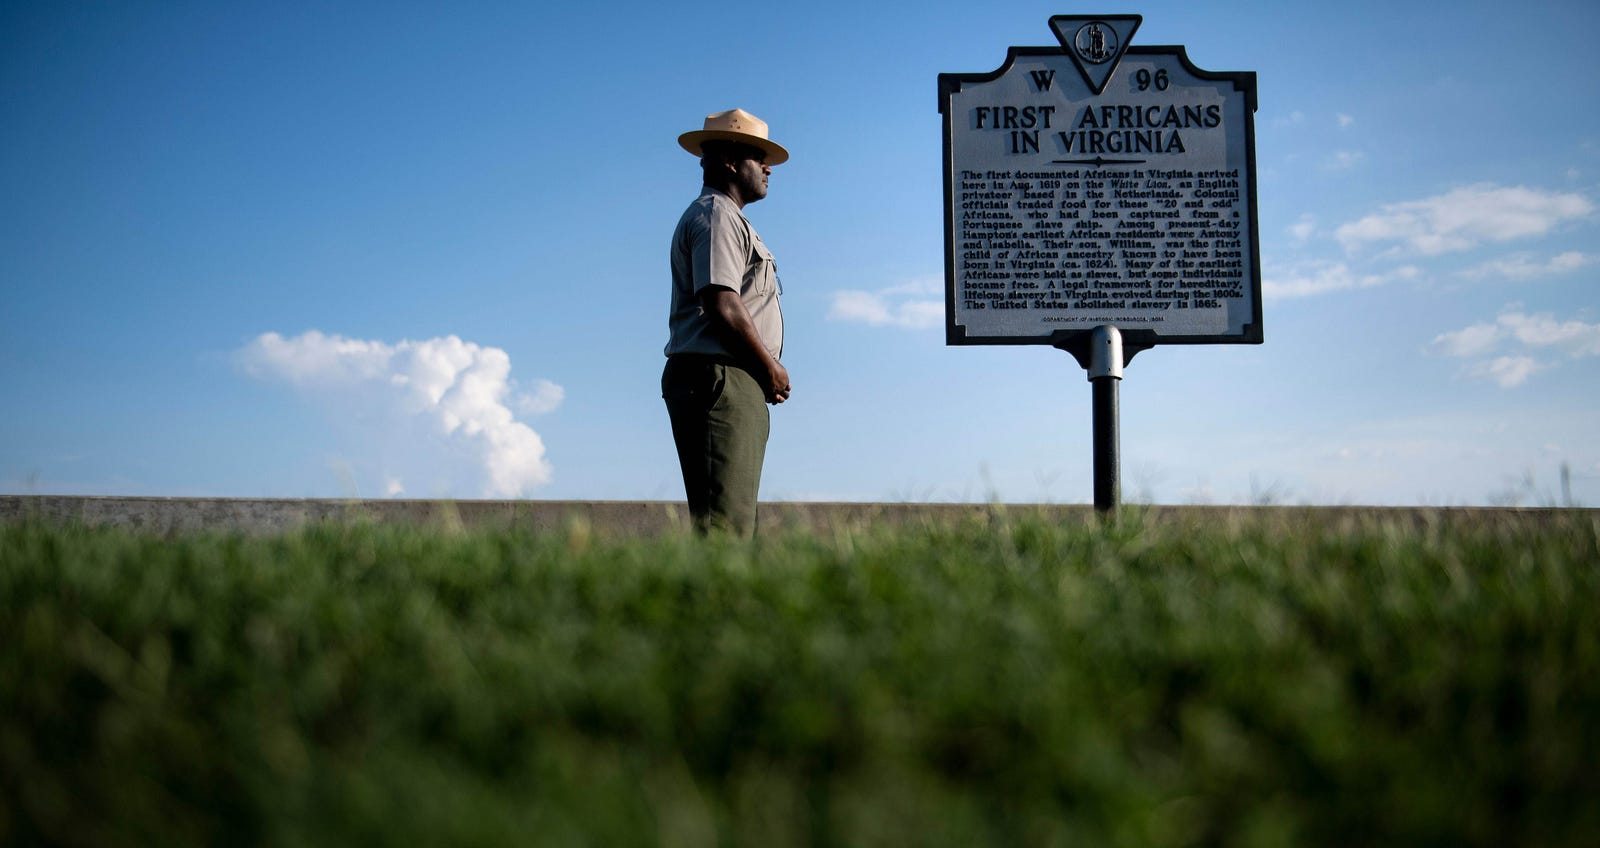 Slavery in America: Some historical sites try to show the horrors. Others are far behind.